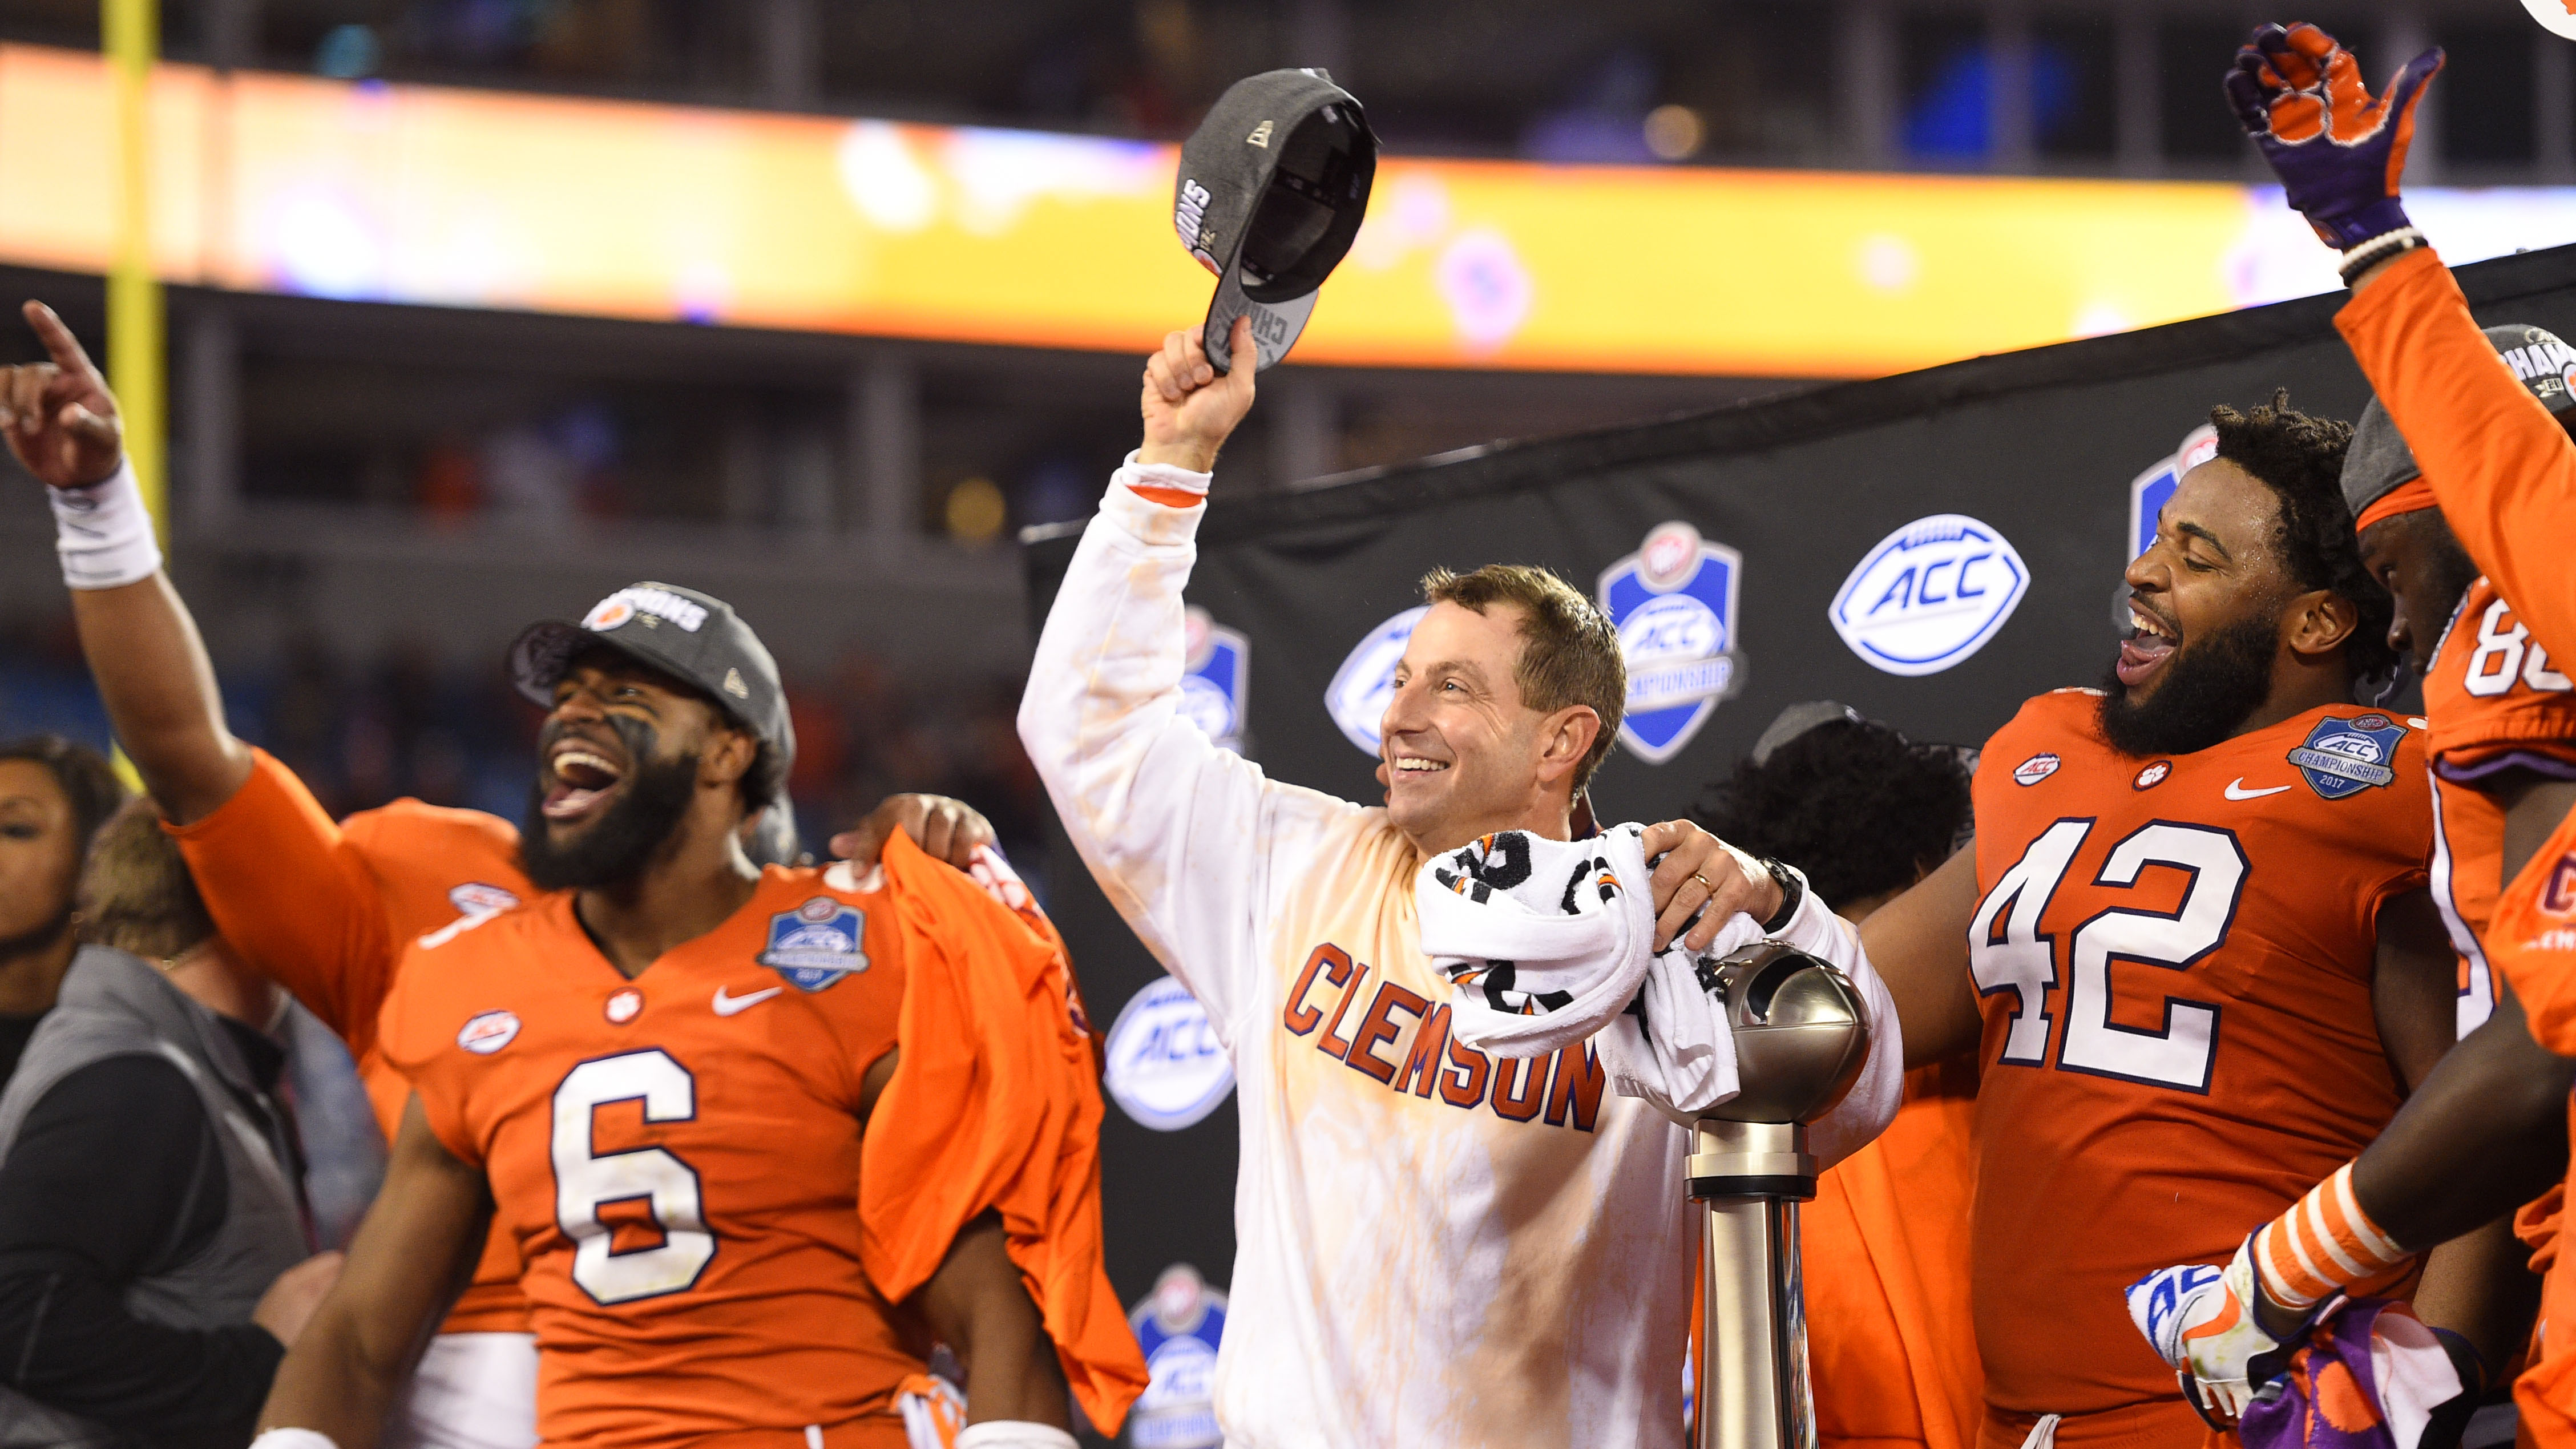 Espn Analyst Thinks Virginia Could Play Clemson Close In Acc Championship Game The Clemson Insider